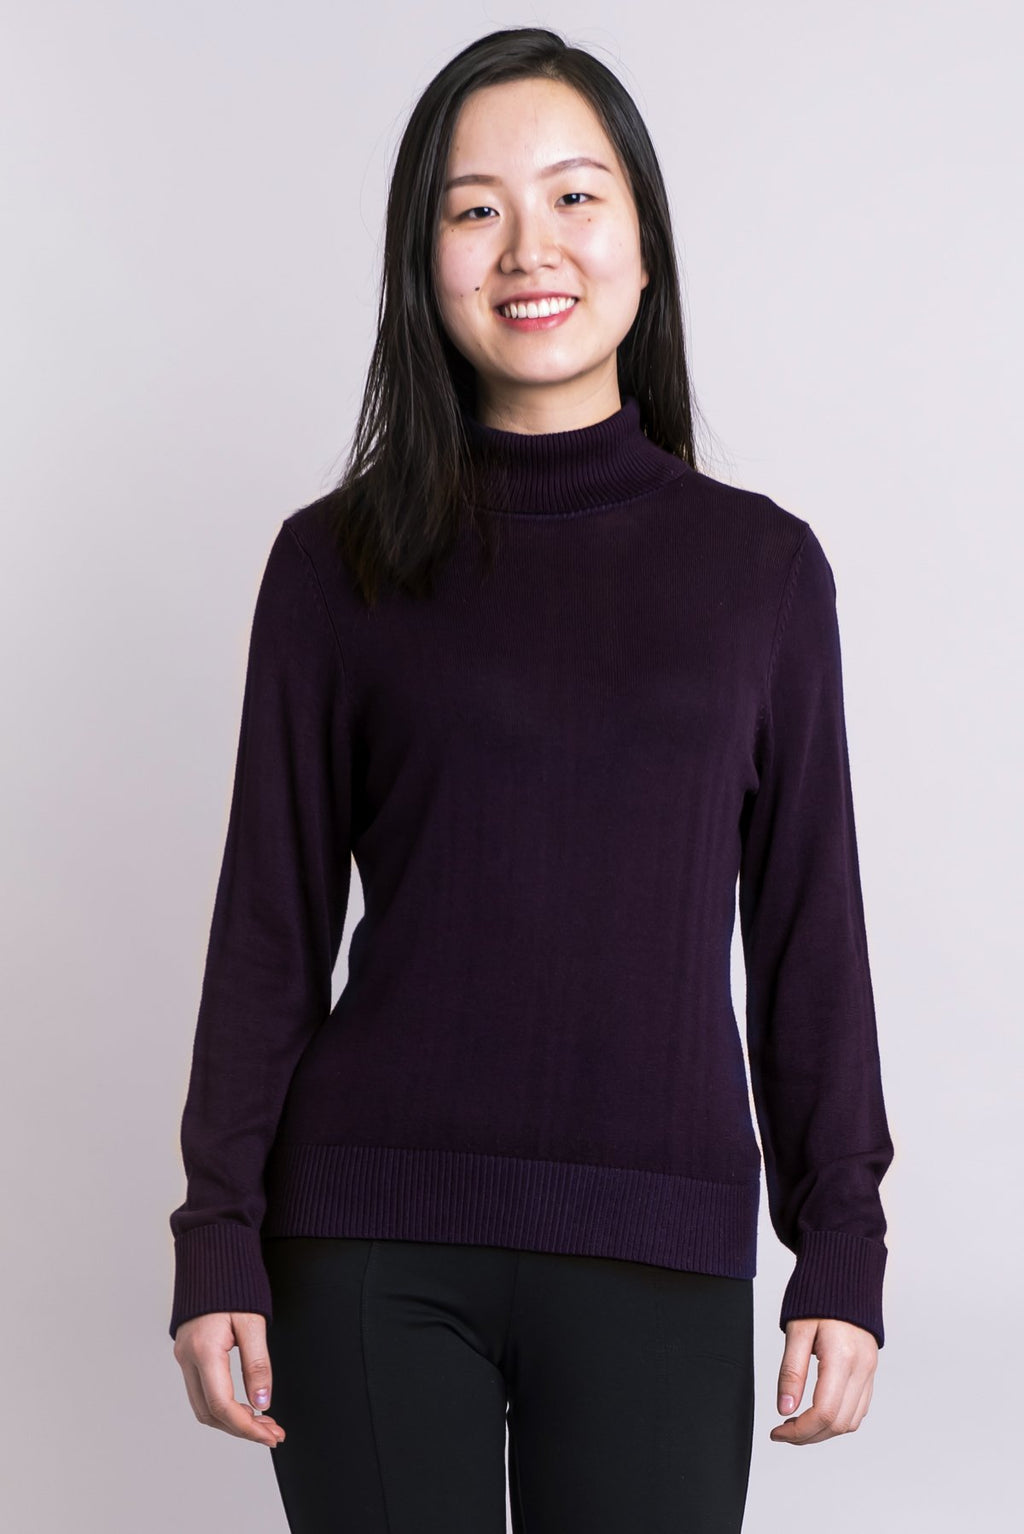 Taylor Sweater, Royale, Bamboo Cotton - Blue Sky Clothing Co